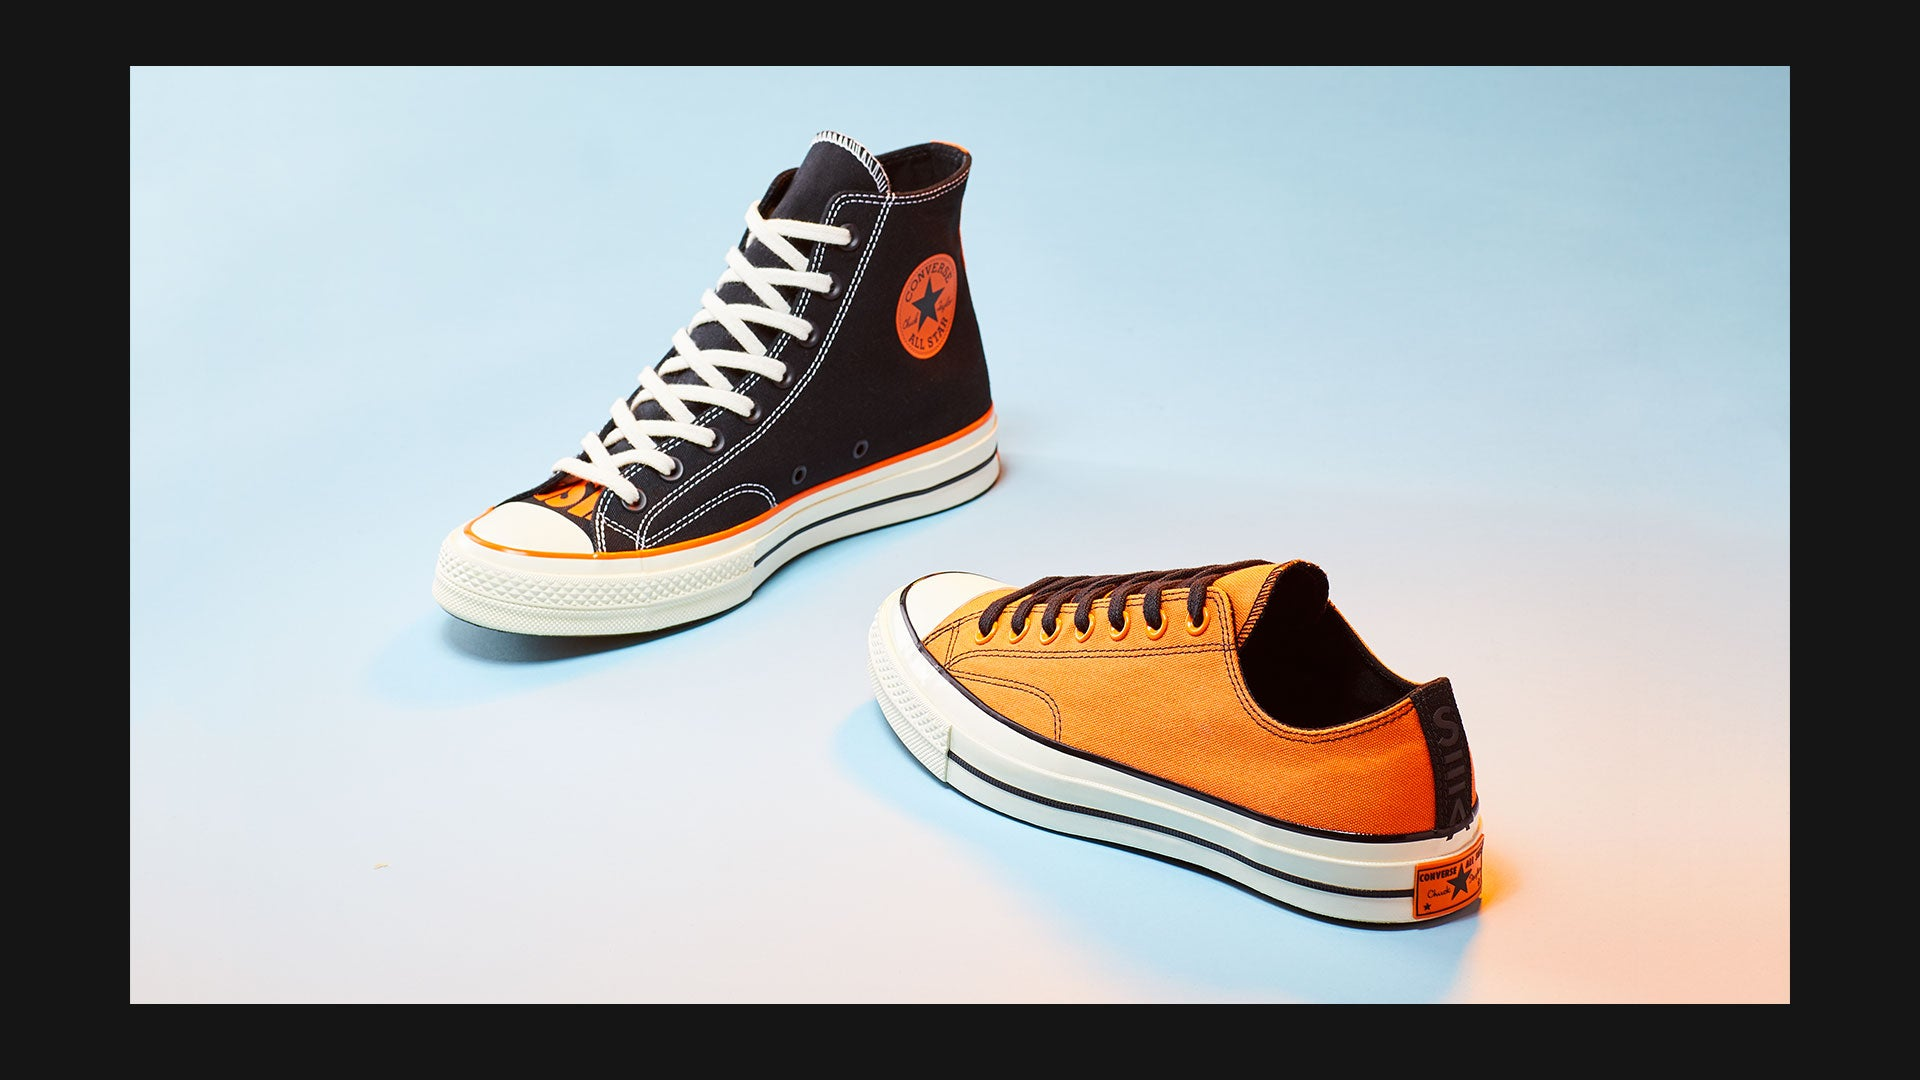 2882f9d36103 Vince Staples releases his official collaboration with Converse. Vince  channeled his latest album